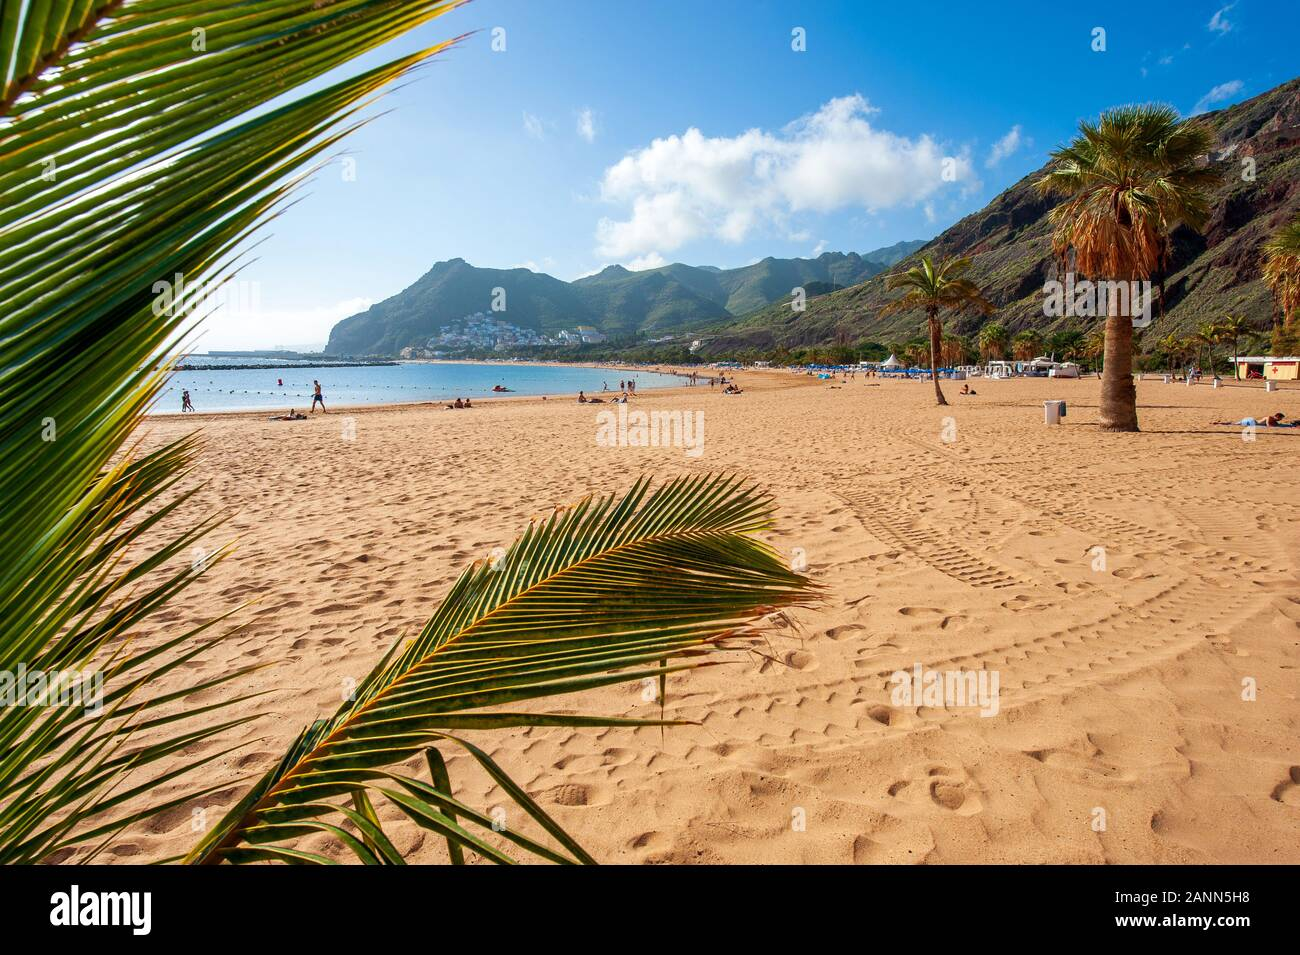 Playa de Las Teresitas is the most beautiful beach on the Canary island Tenerife. The white sand was shipped from the Sahara desert. Stock Photo